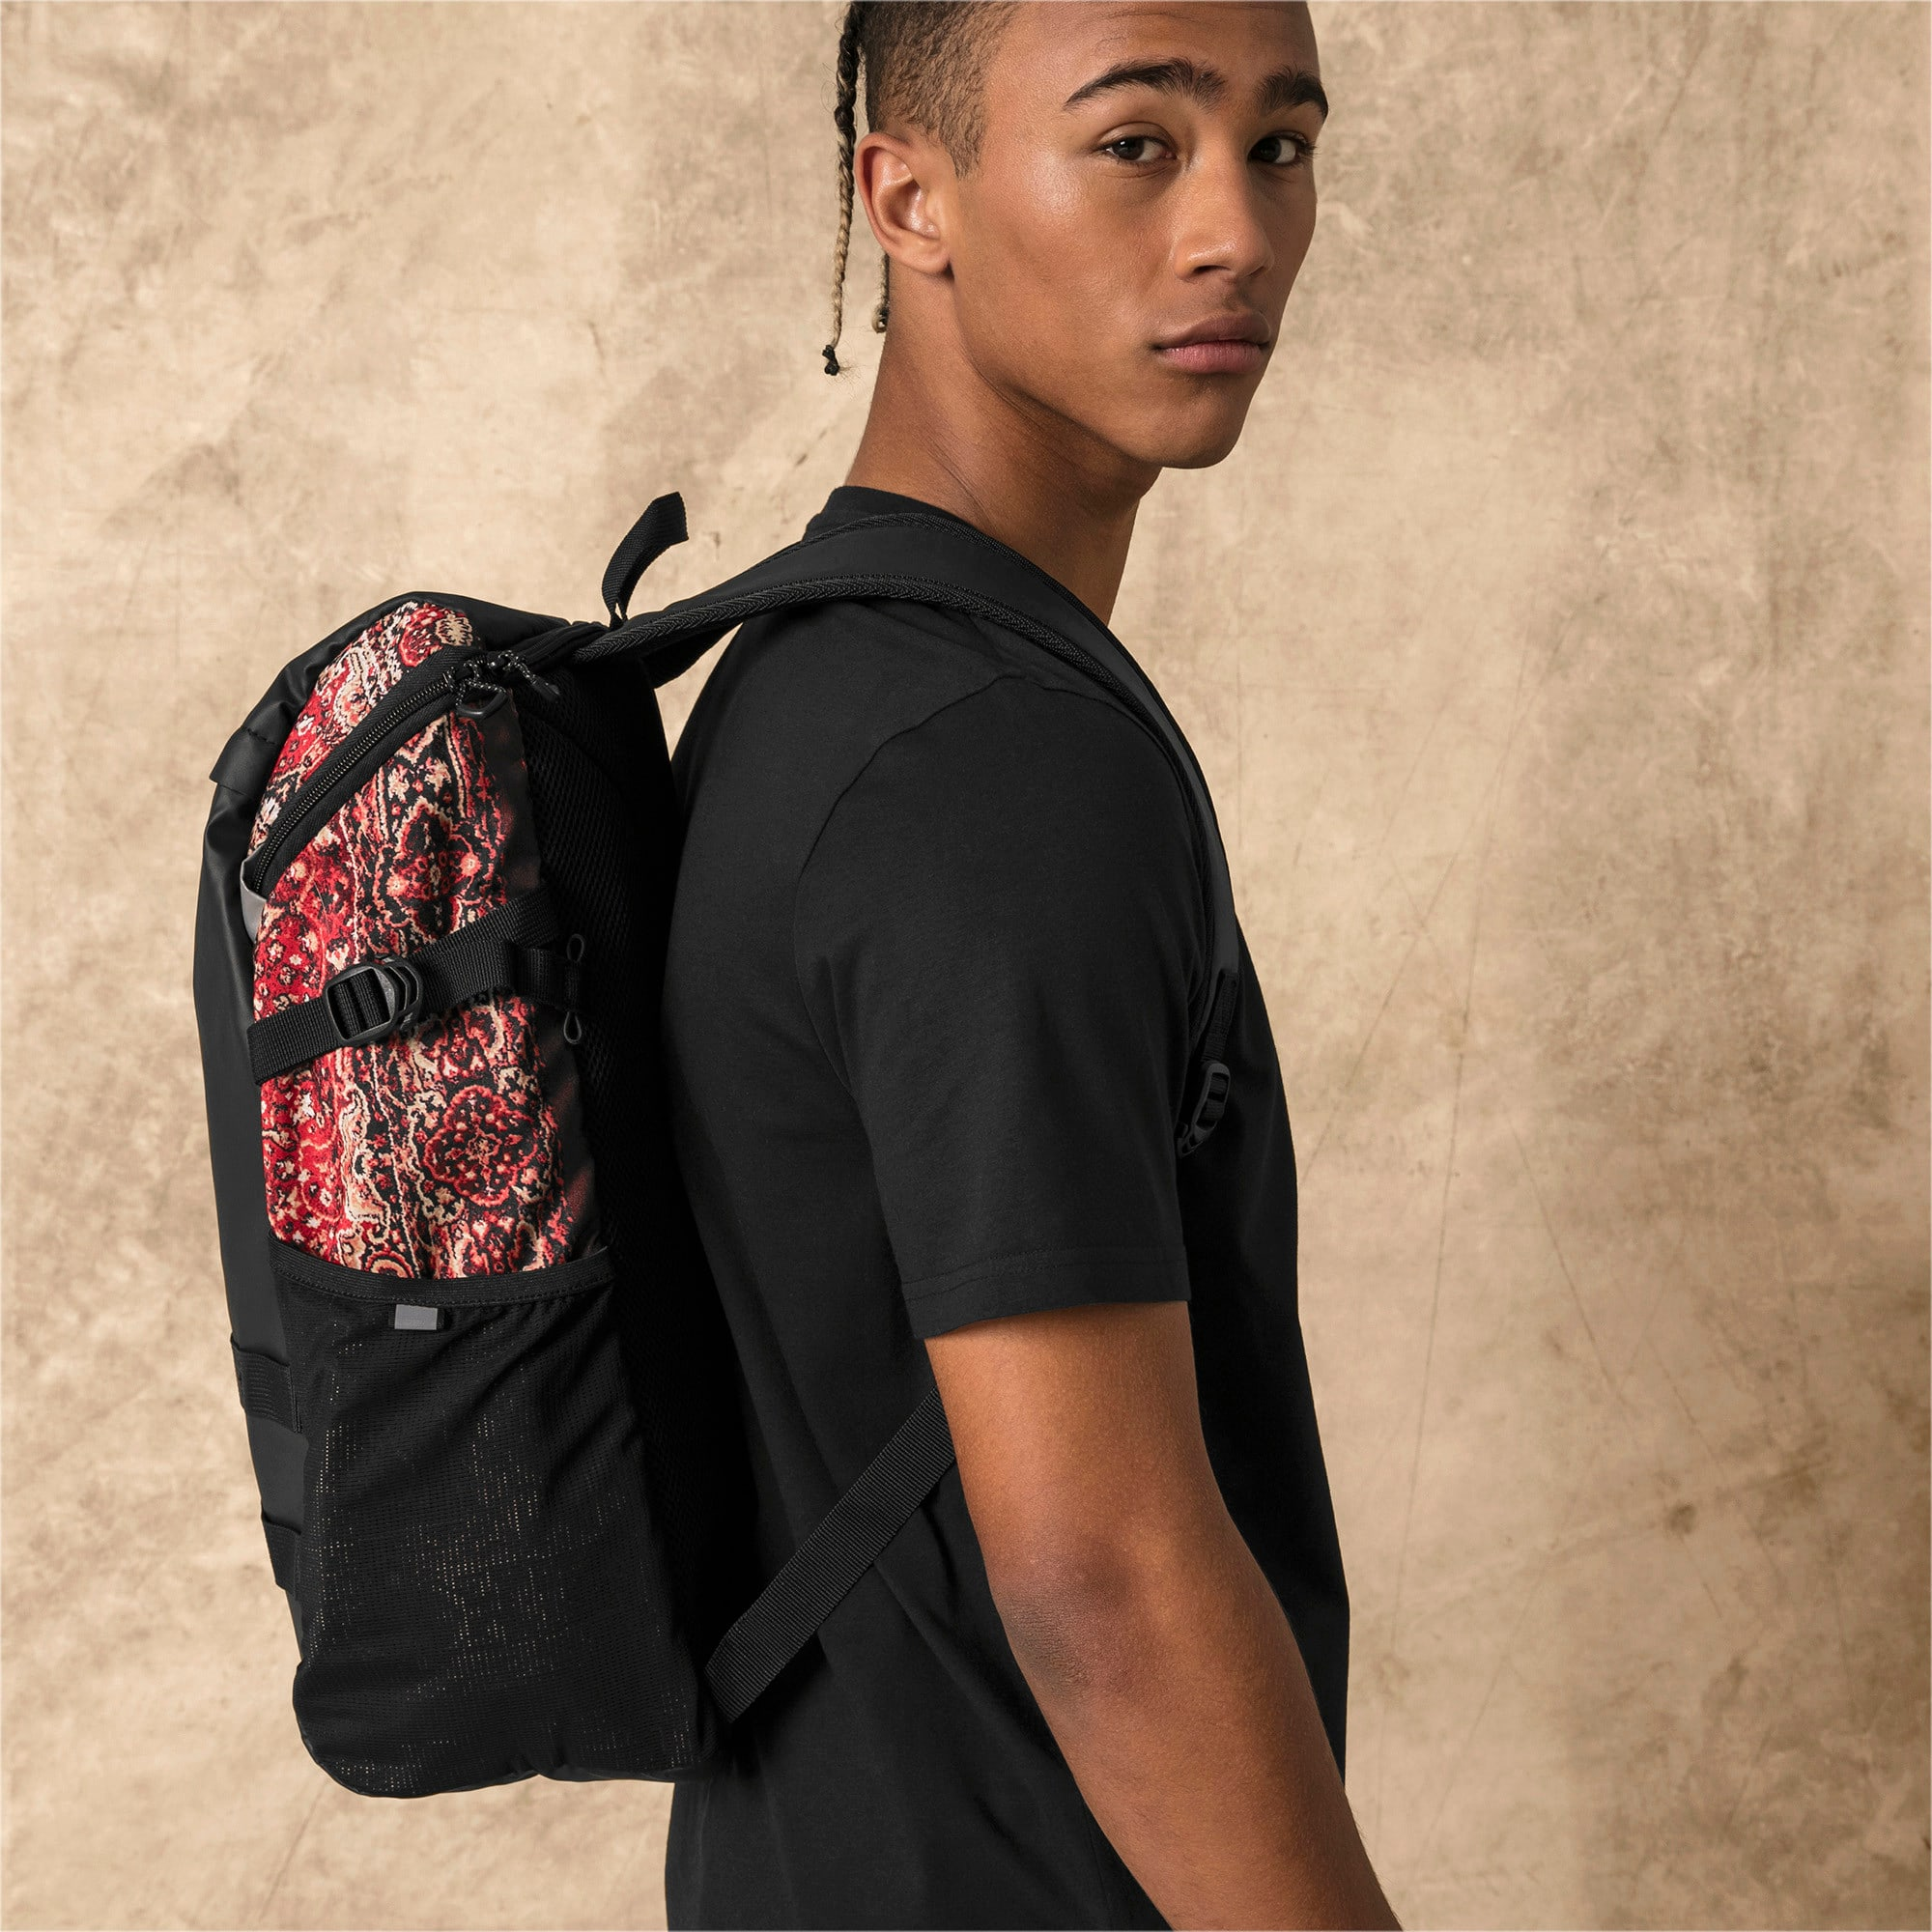 Thumbnail 3 of PUMA x LES BENJAMINS Backpack, Puma Black-AOP, medium